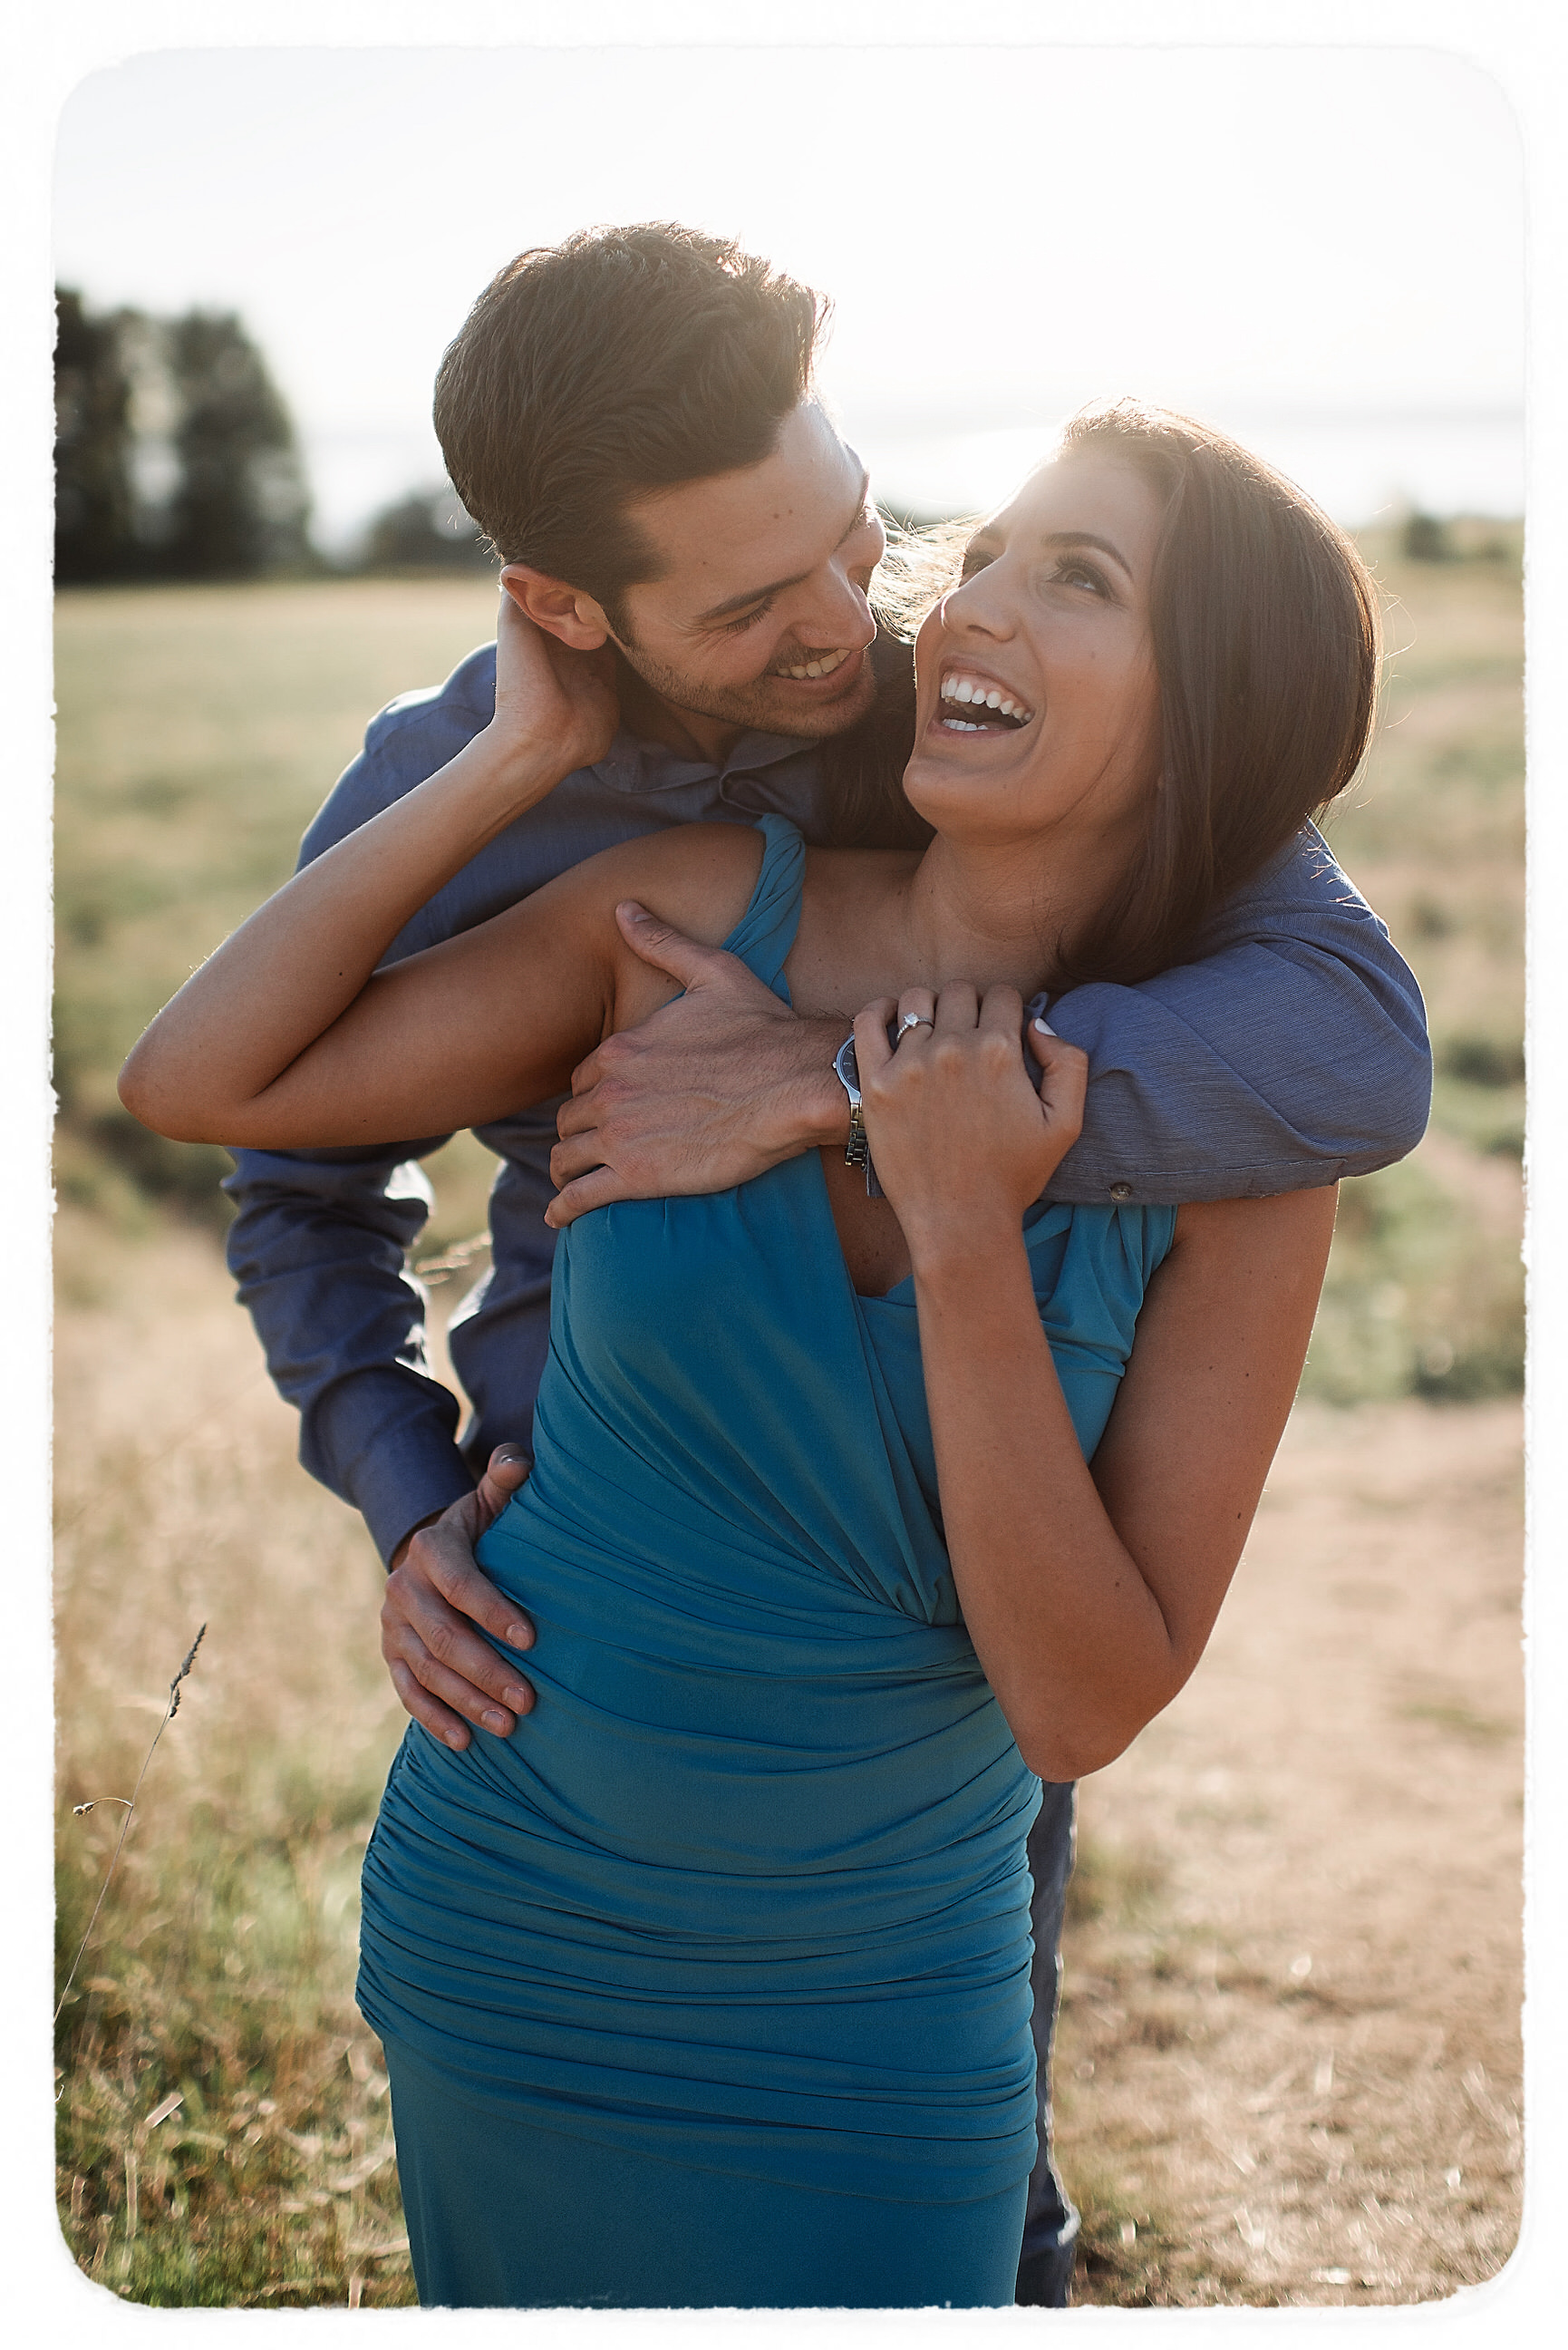 Kelly&Mike-EngagementSession-OriginalCollection-71Film.jpg